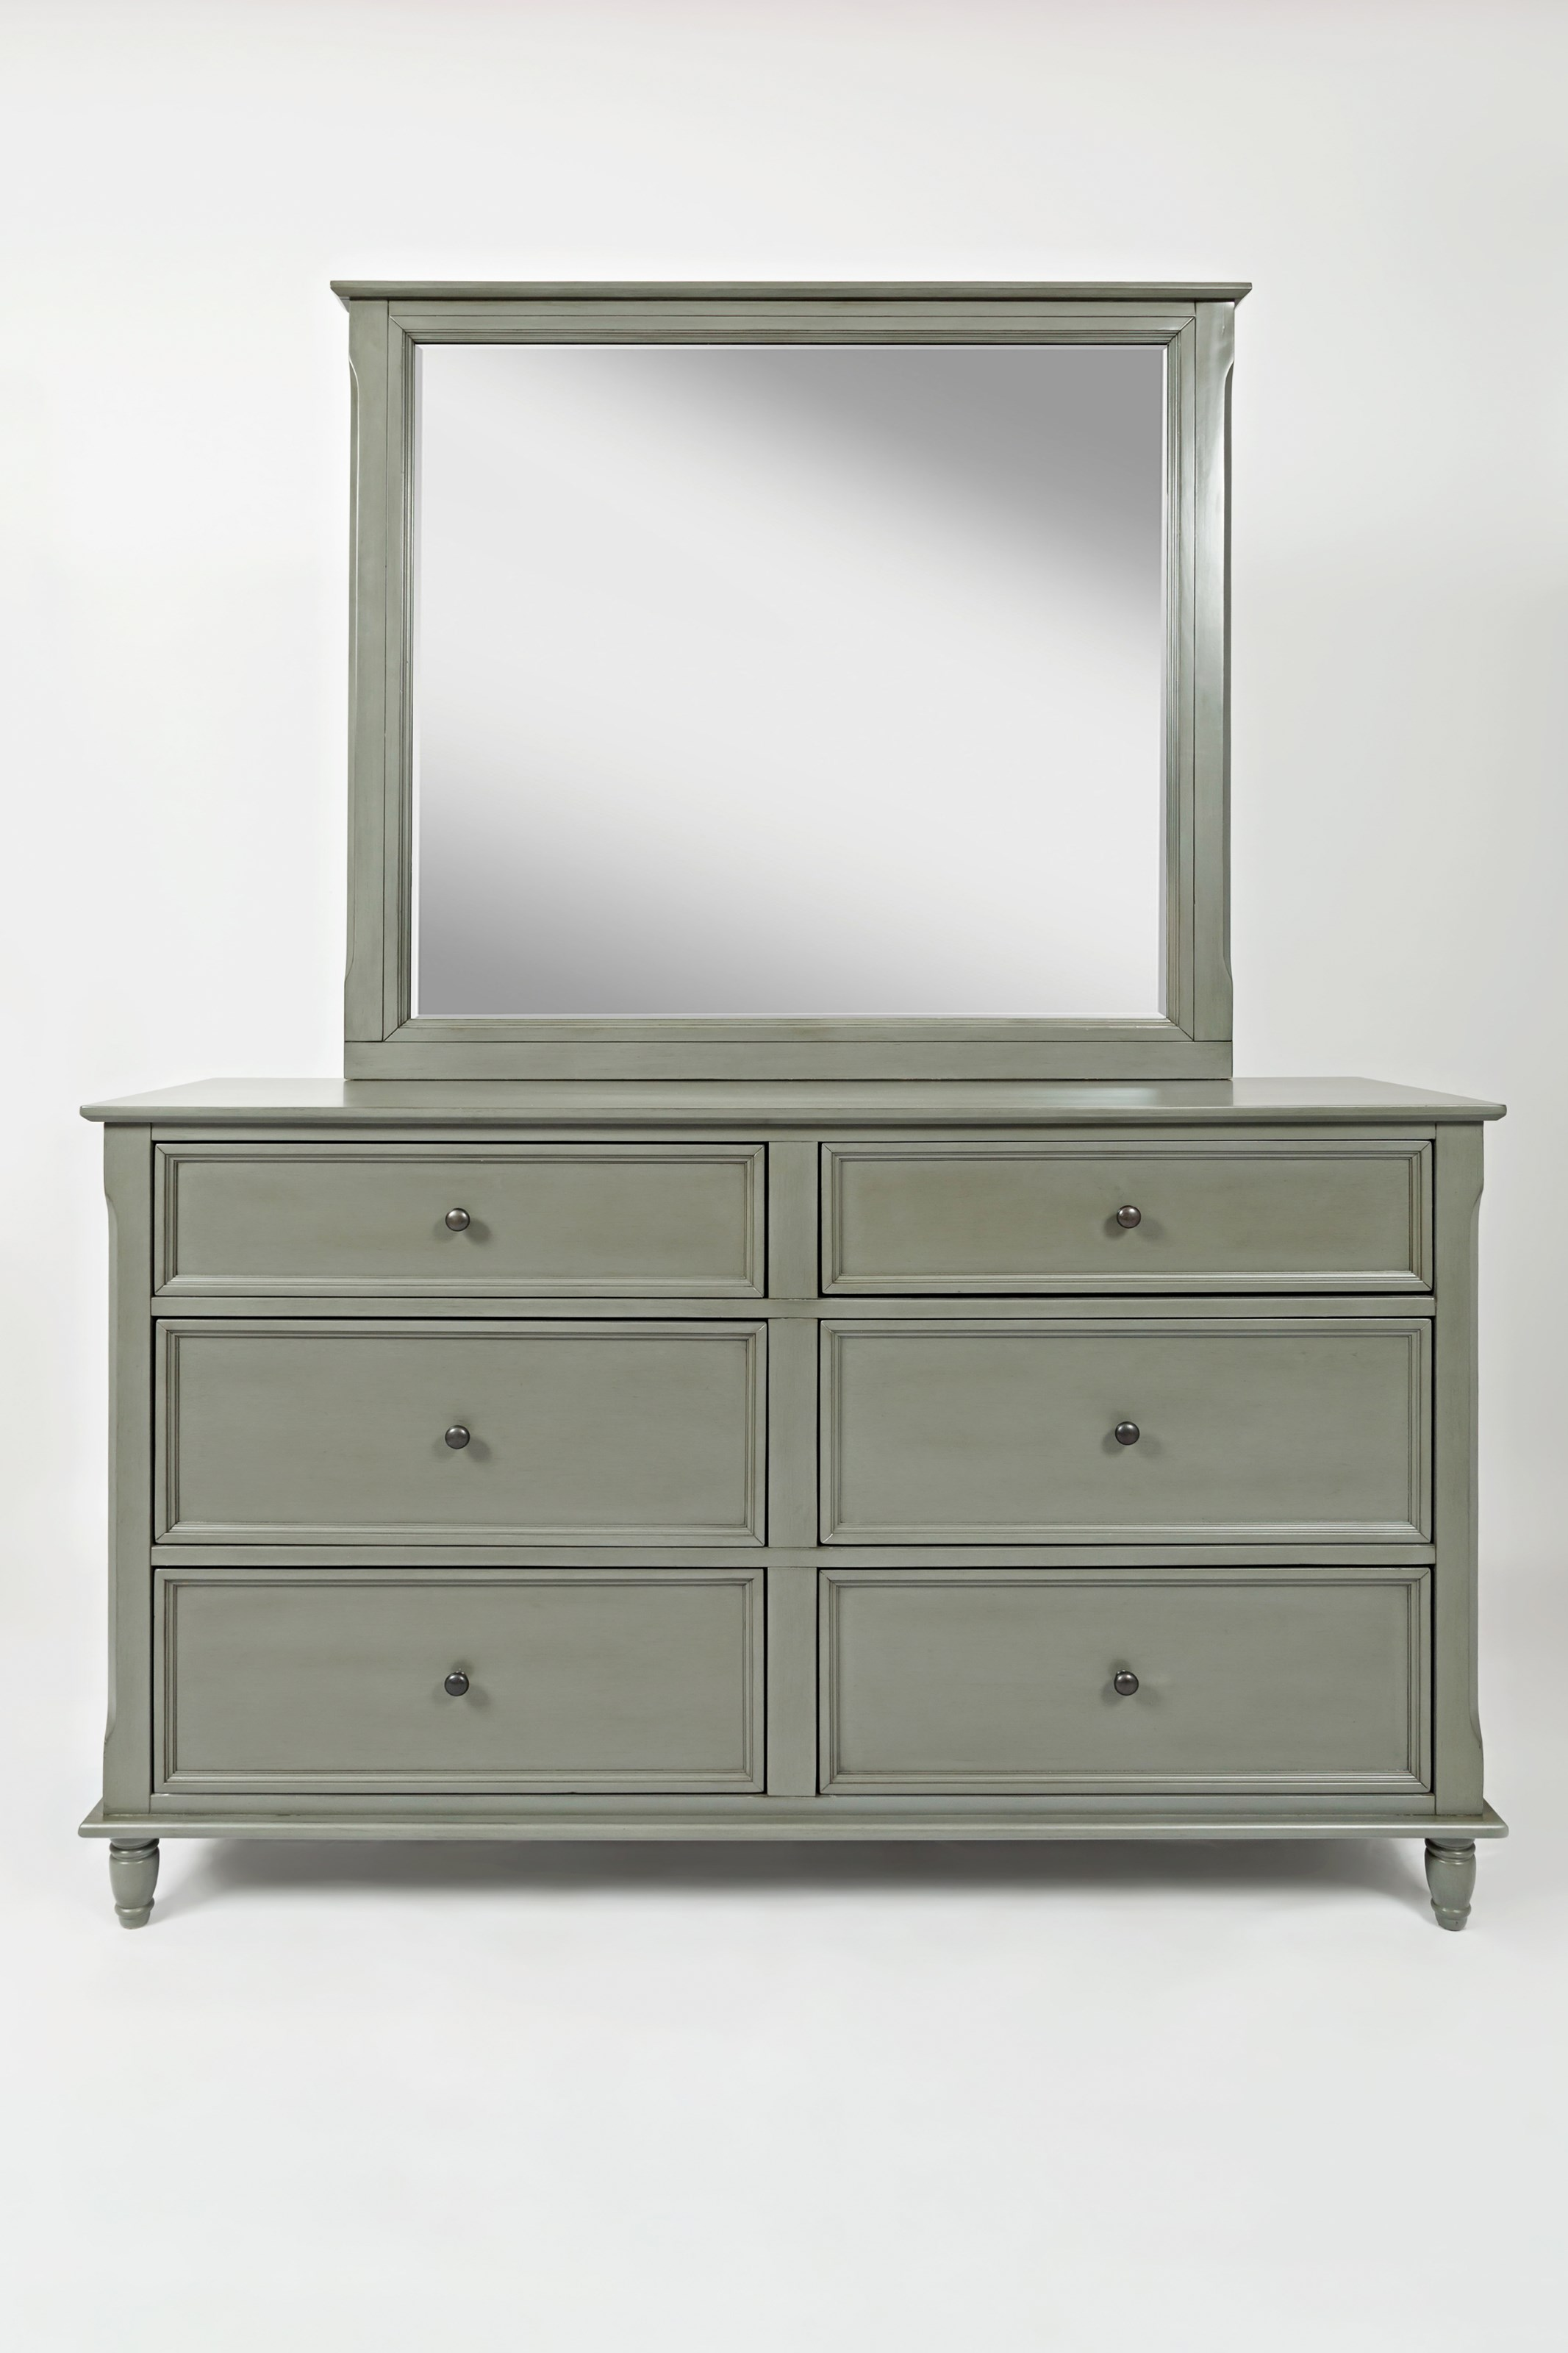 Jofran Avignon Youth Dresser and Mirror Set - Item Number: 1618-10+20